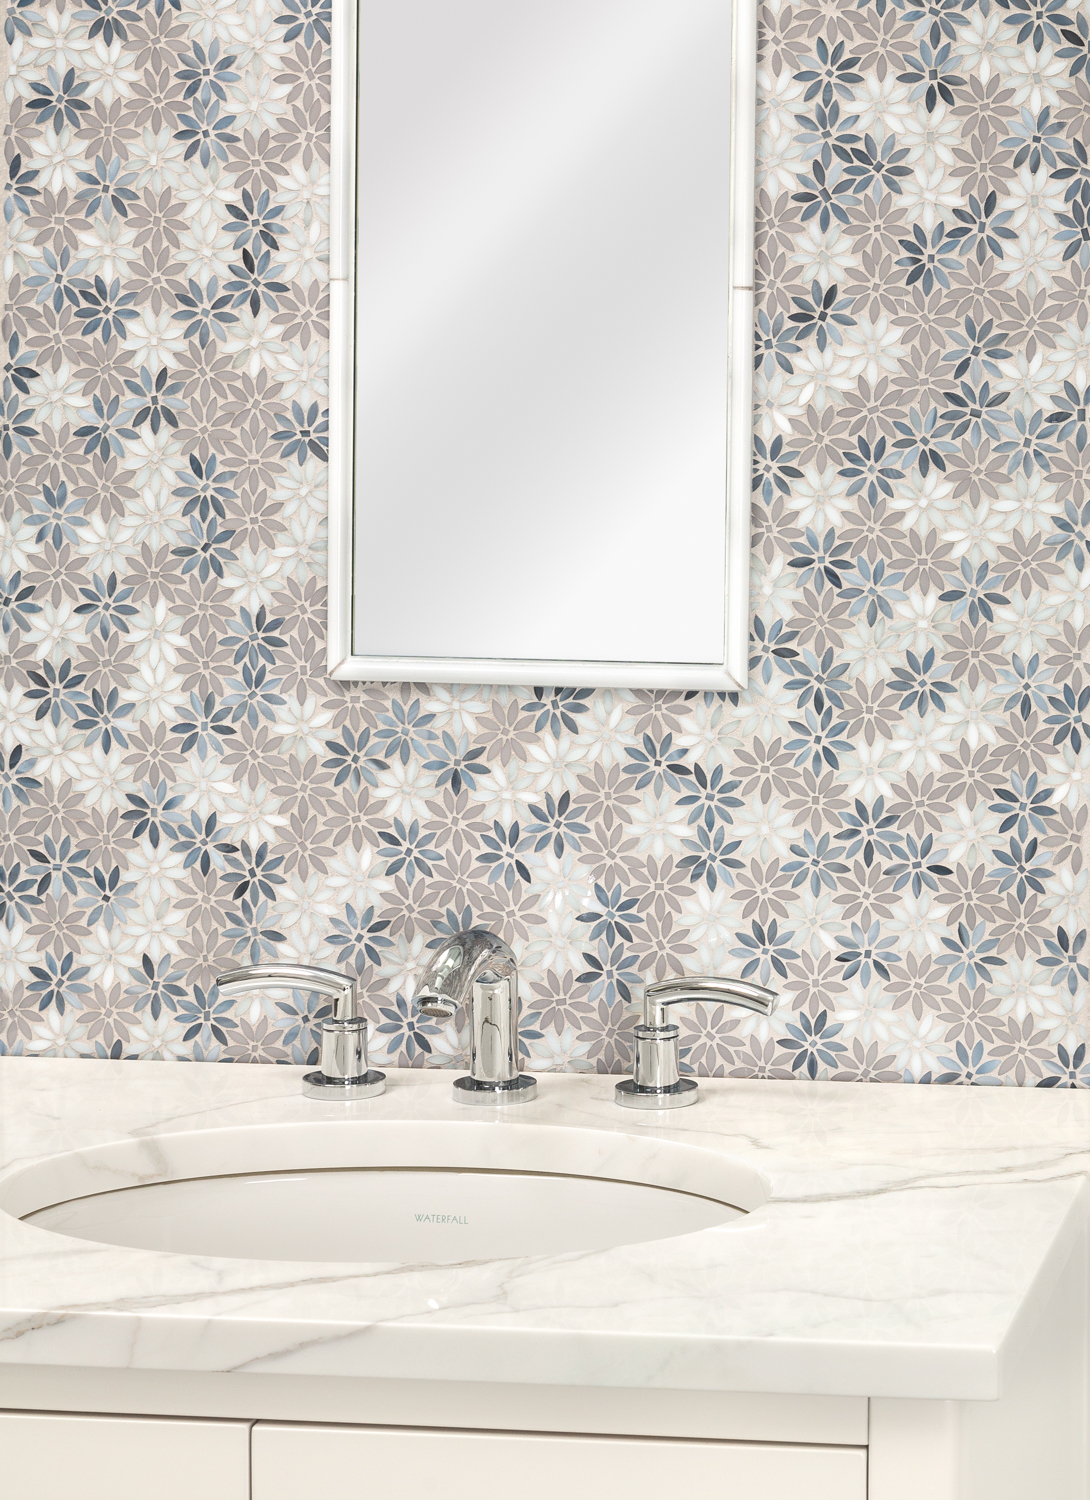 dapper daisy jazz glass water jet mosaic by artistic tile featured on designjournal